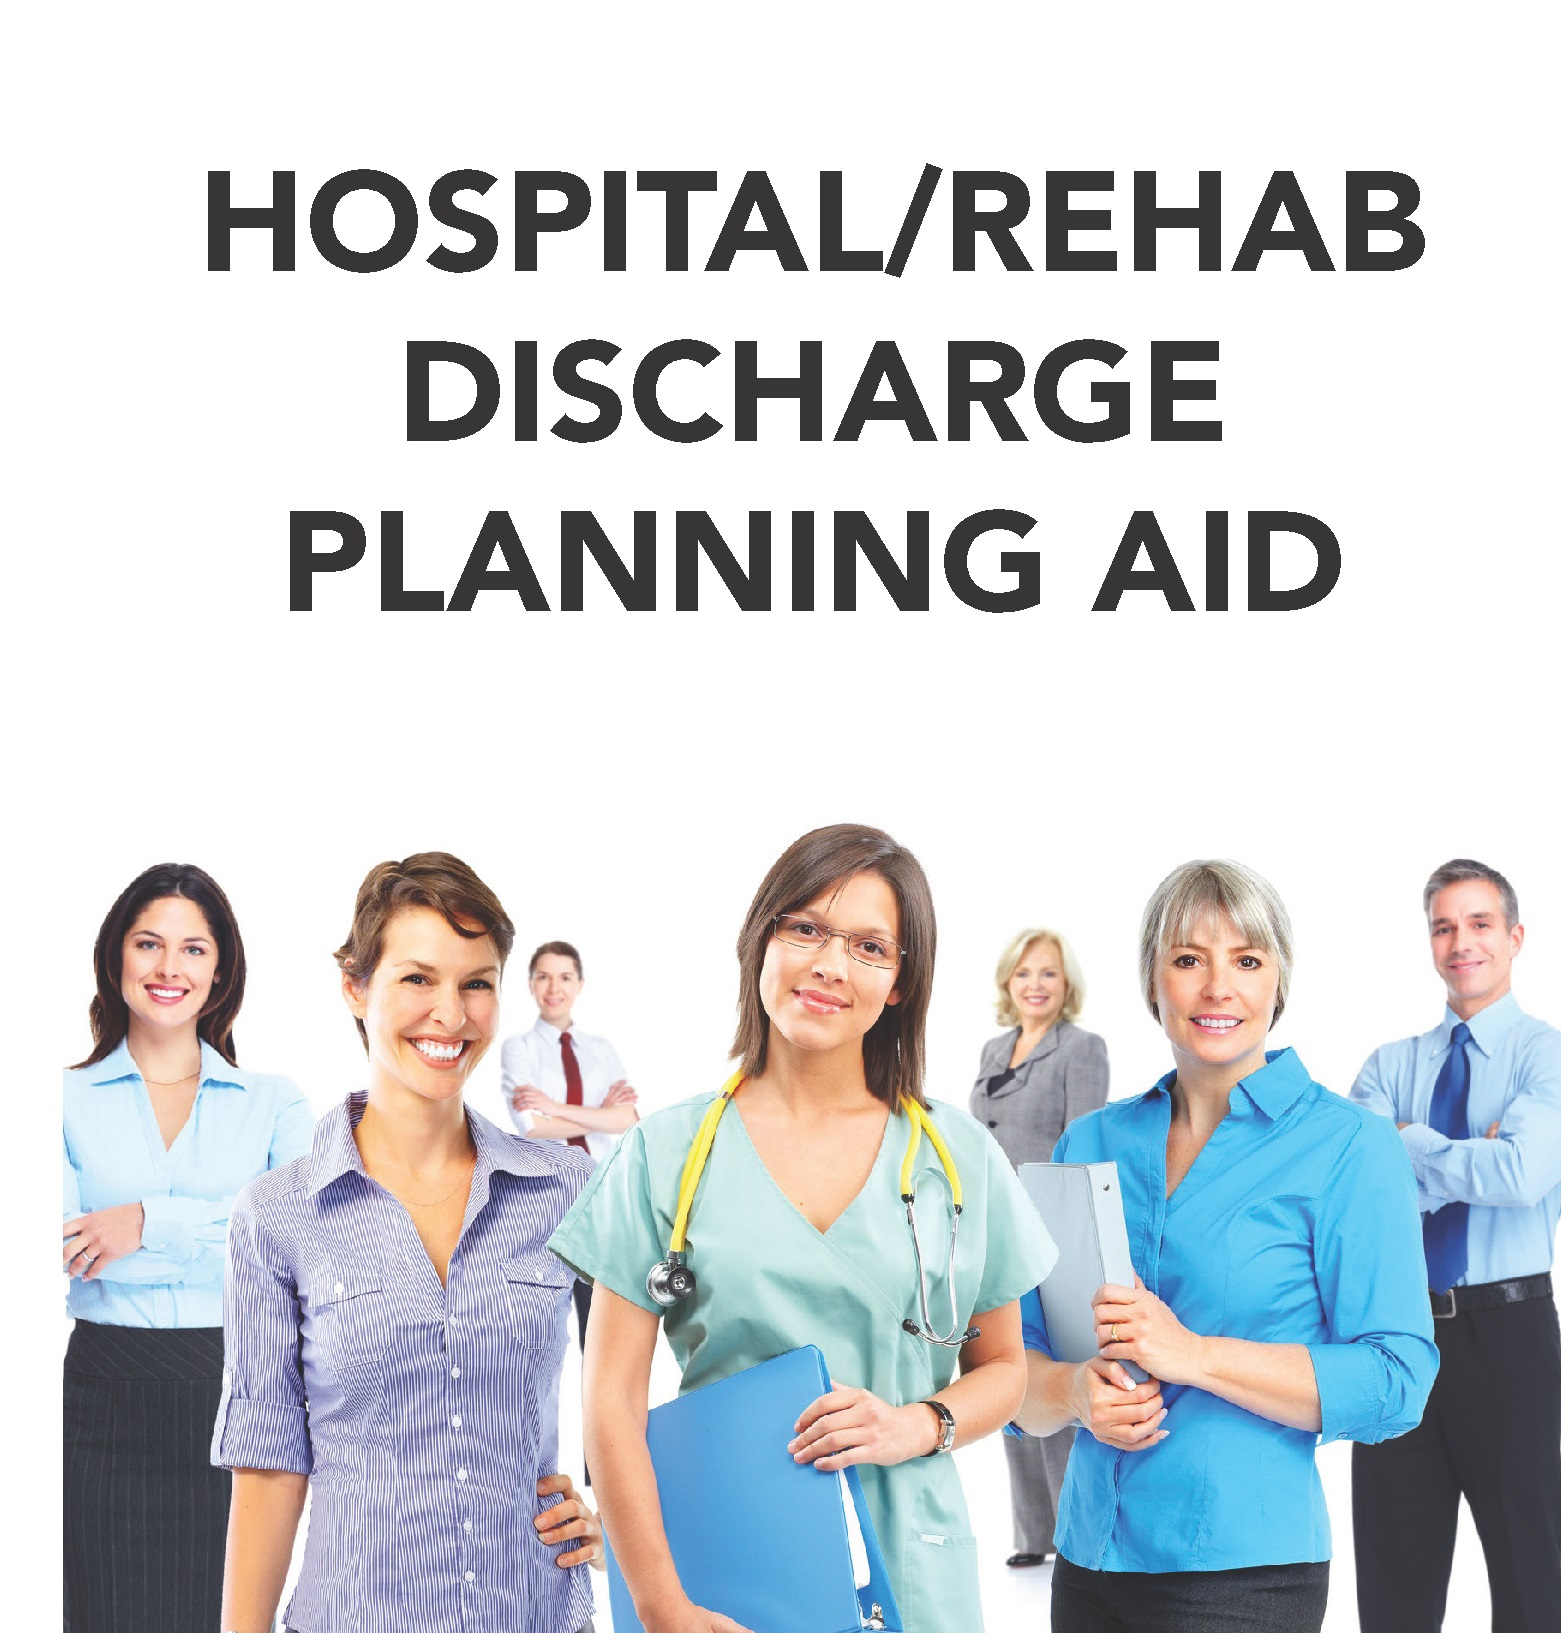 hospital rehab discharge planning aid